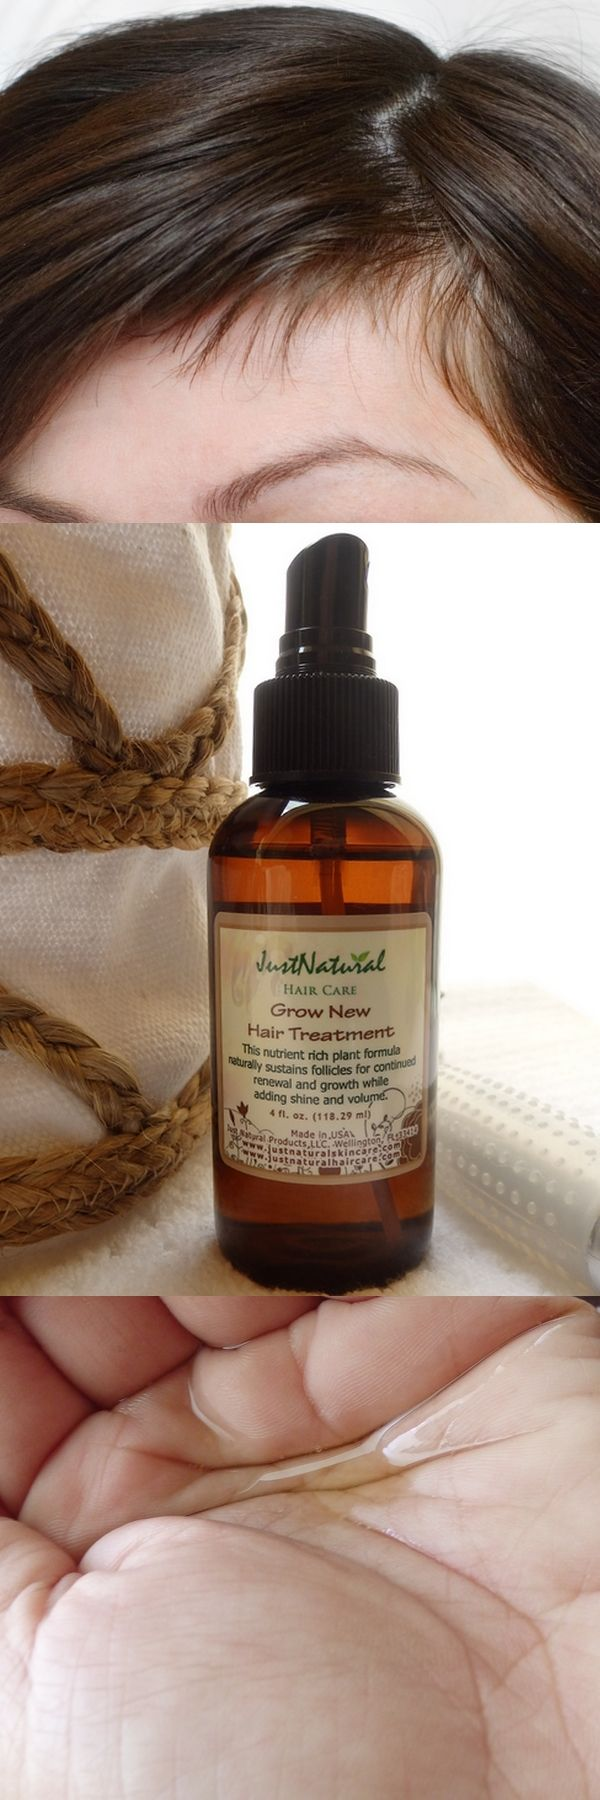 I was so upset after finding out that I had a hormonal imbalance because my hair stopped growing and was falling out in chunks, I was starting to notice bald spots. The doctor prescribed medicine and a very strong shampoo that did absolutely nothing, if I may say I believe I was getting worse. So I took the decision to use only natural products on my hair and I very very happy. These products have me growing baby hair, now I believe chemicals were destroying my hair and scalp.